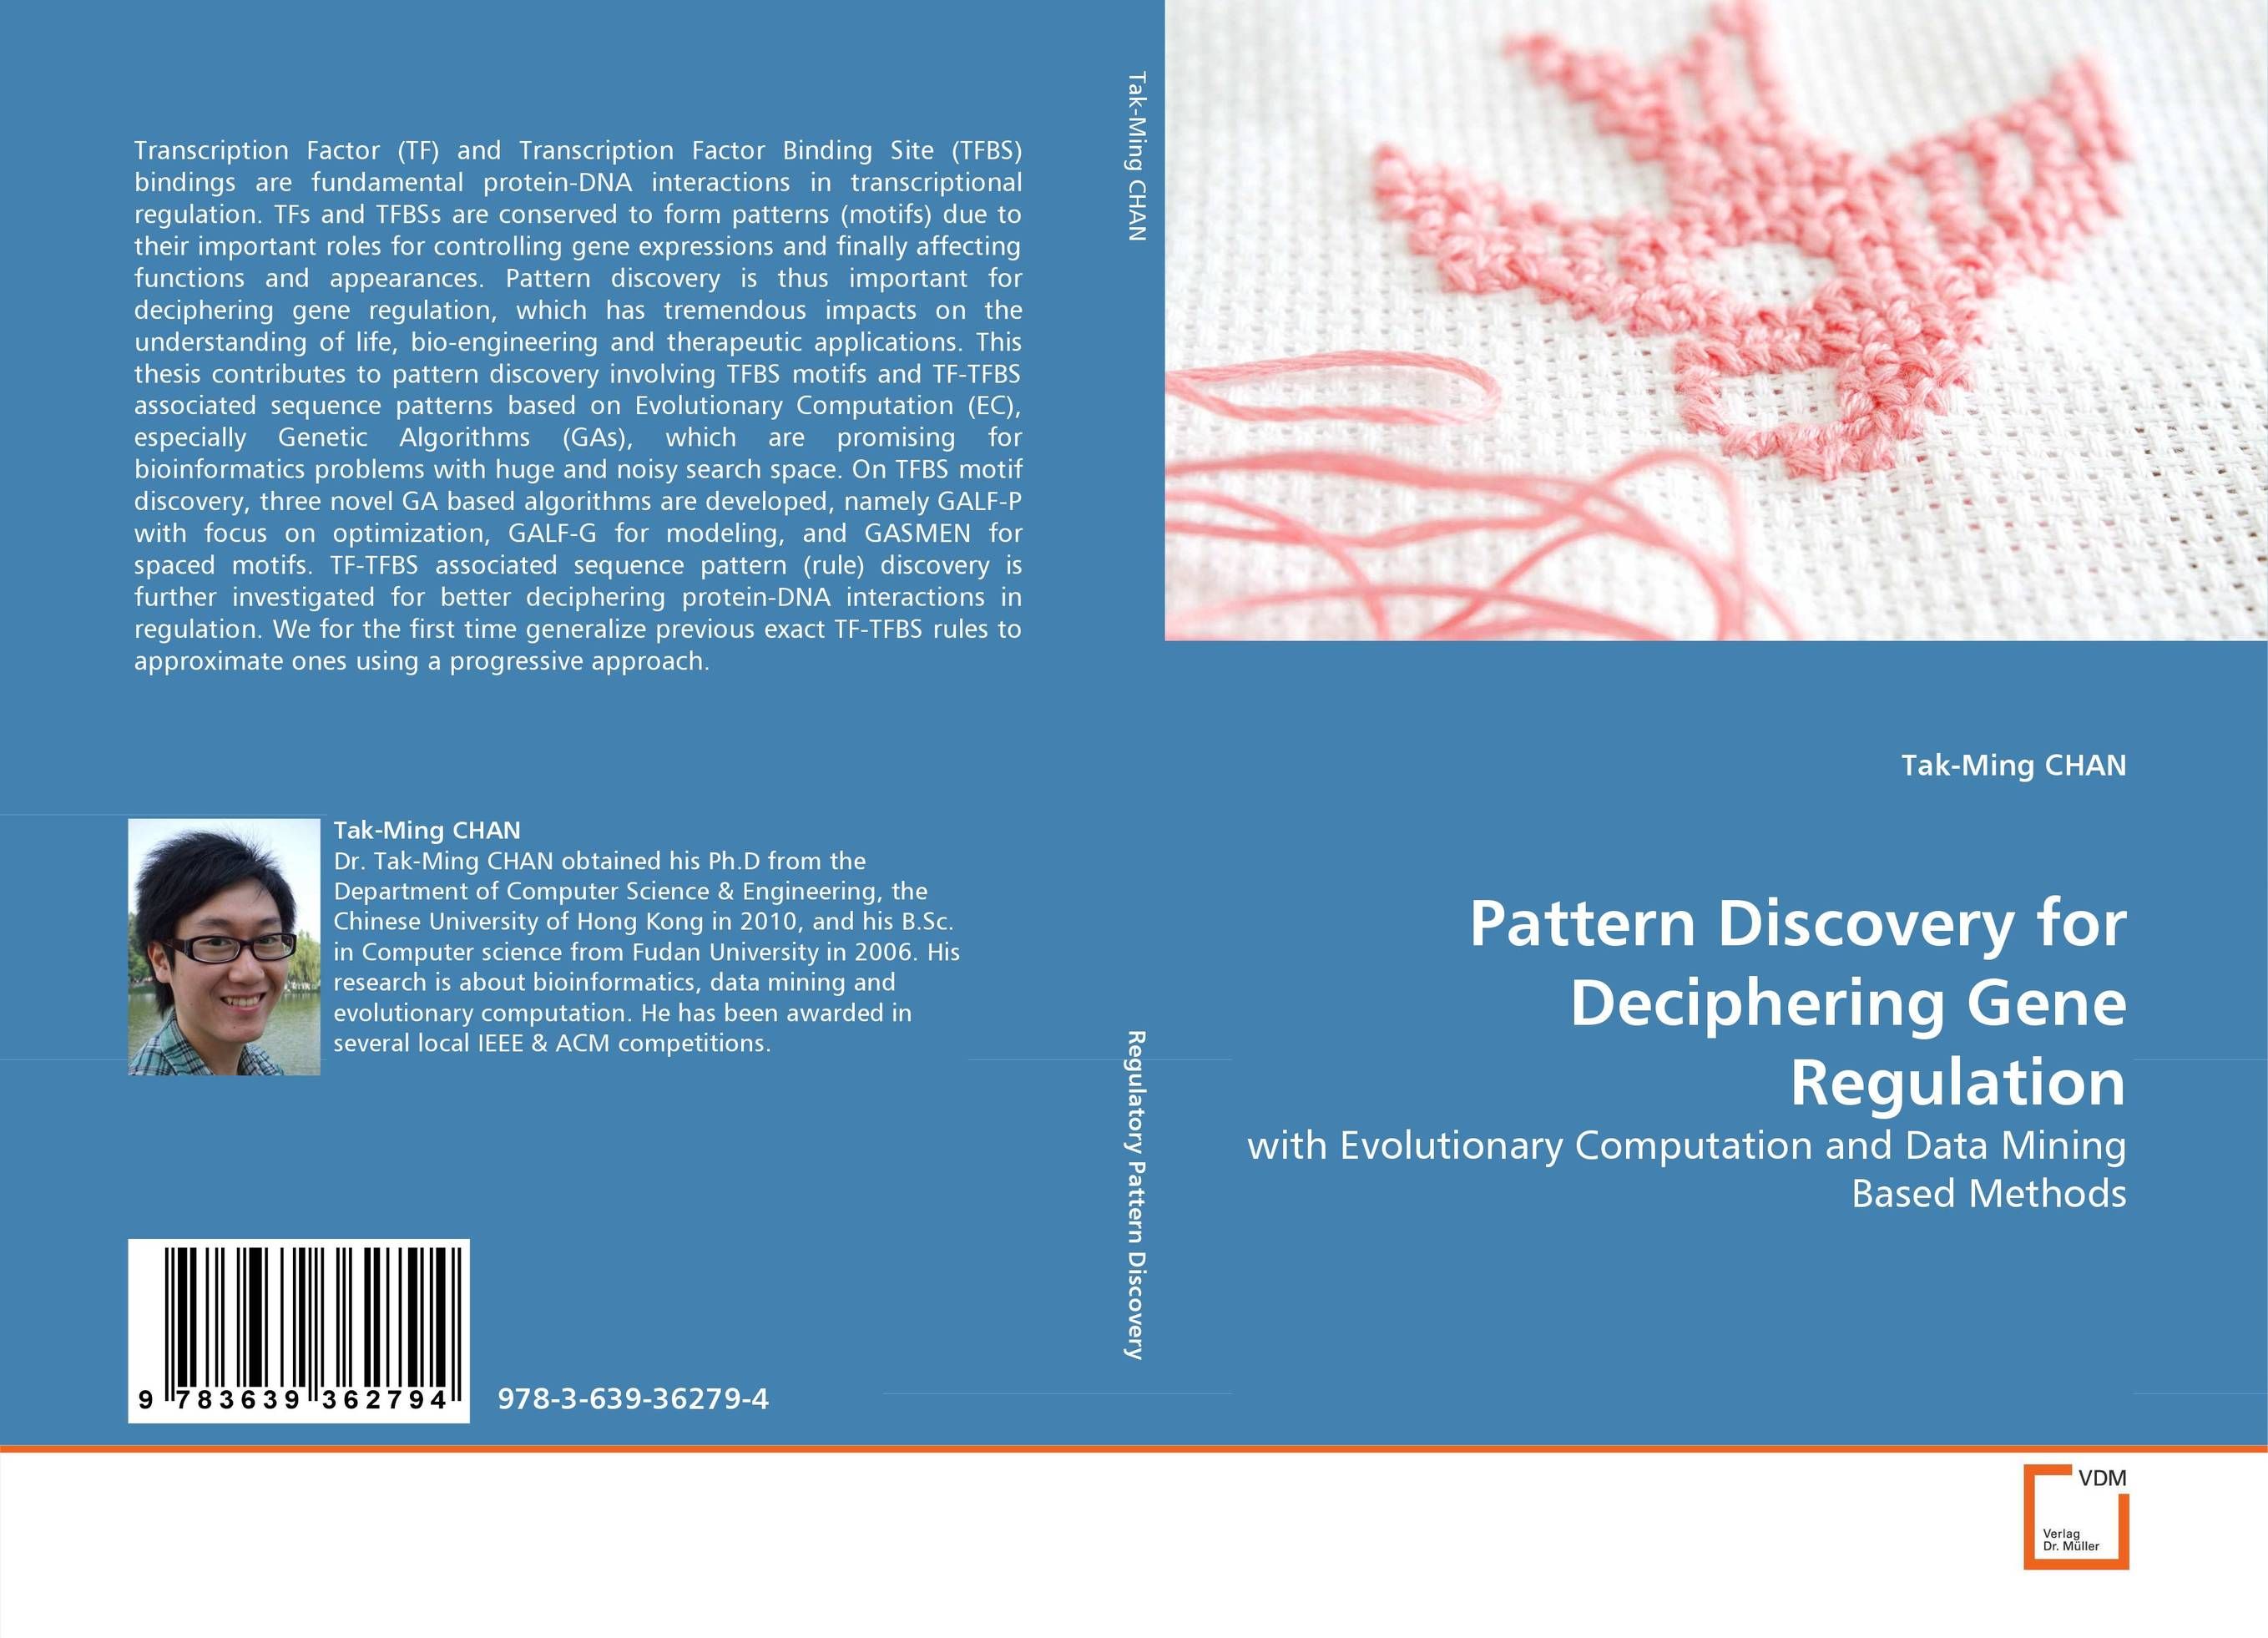 Pattern Discovery for Deciphering Gene Regulation frequent pattern discovery from gene expression data